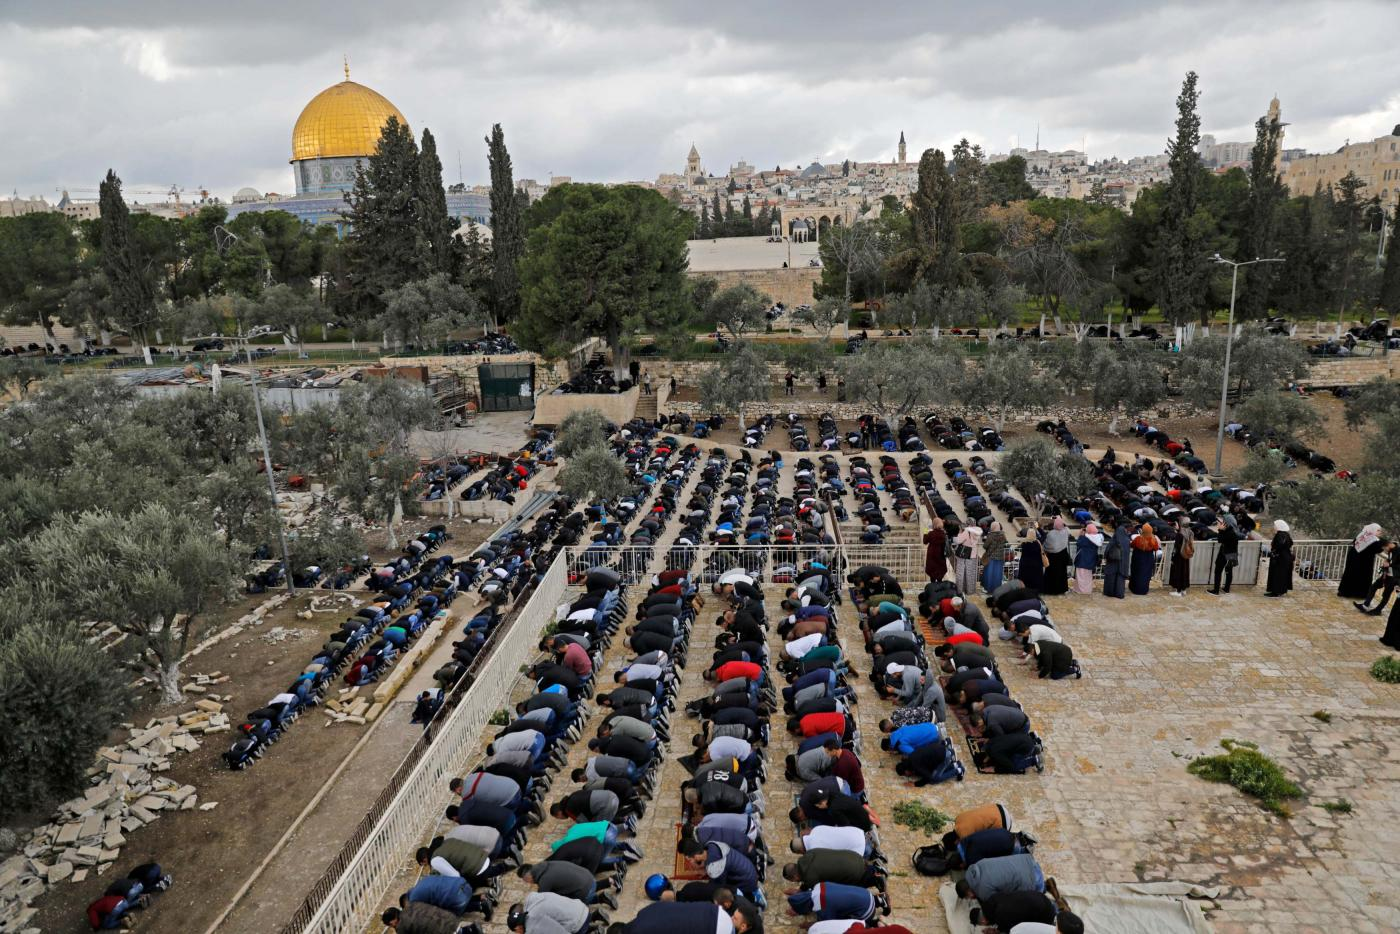 Palestinians Muslim worshippers pray in the Al-Aqsa Mosque compound in the Old City of Jerusalem, on 22 February 2019 (AFP)